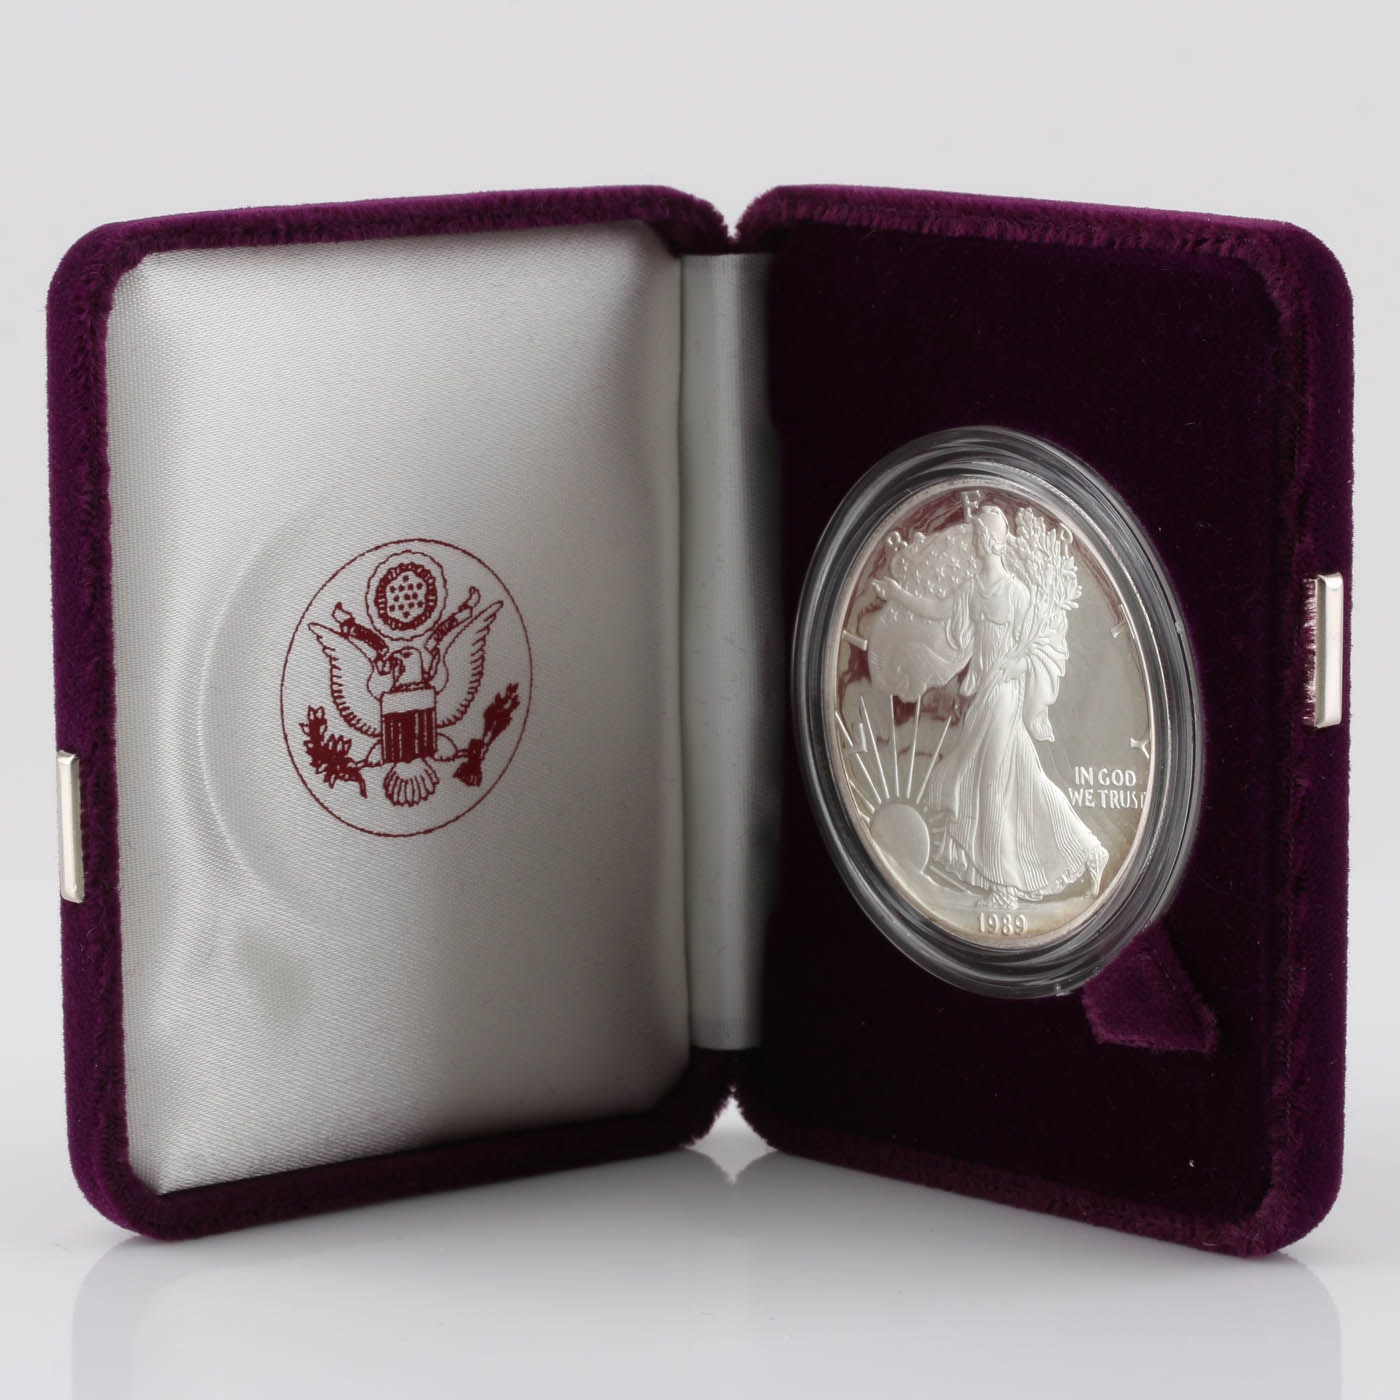 1989-S One Dollar U.S. Silver Eagle Proof Coin